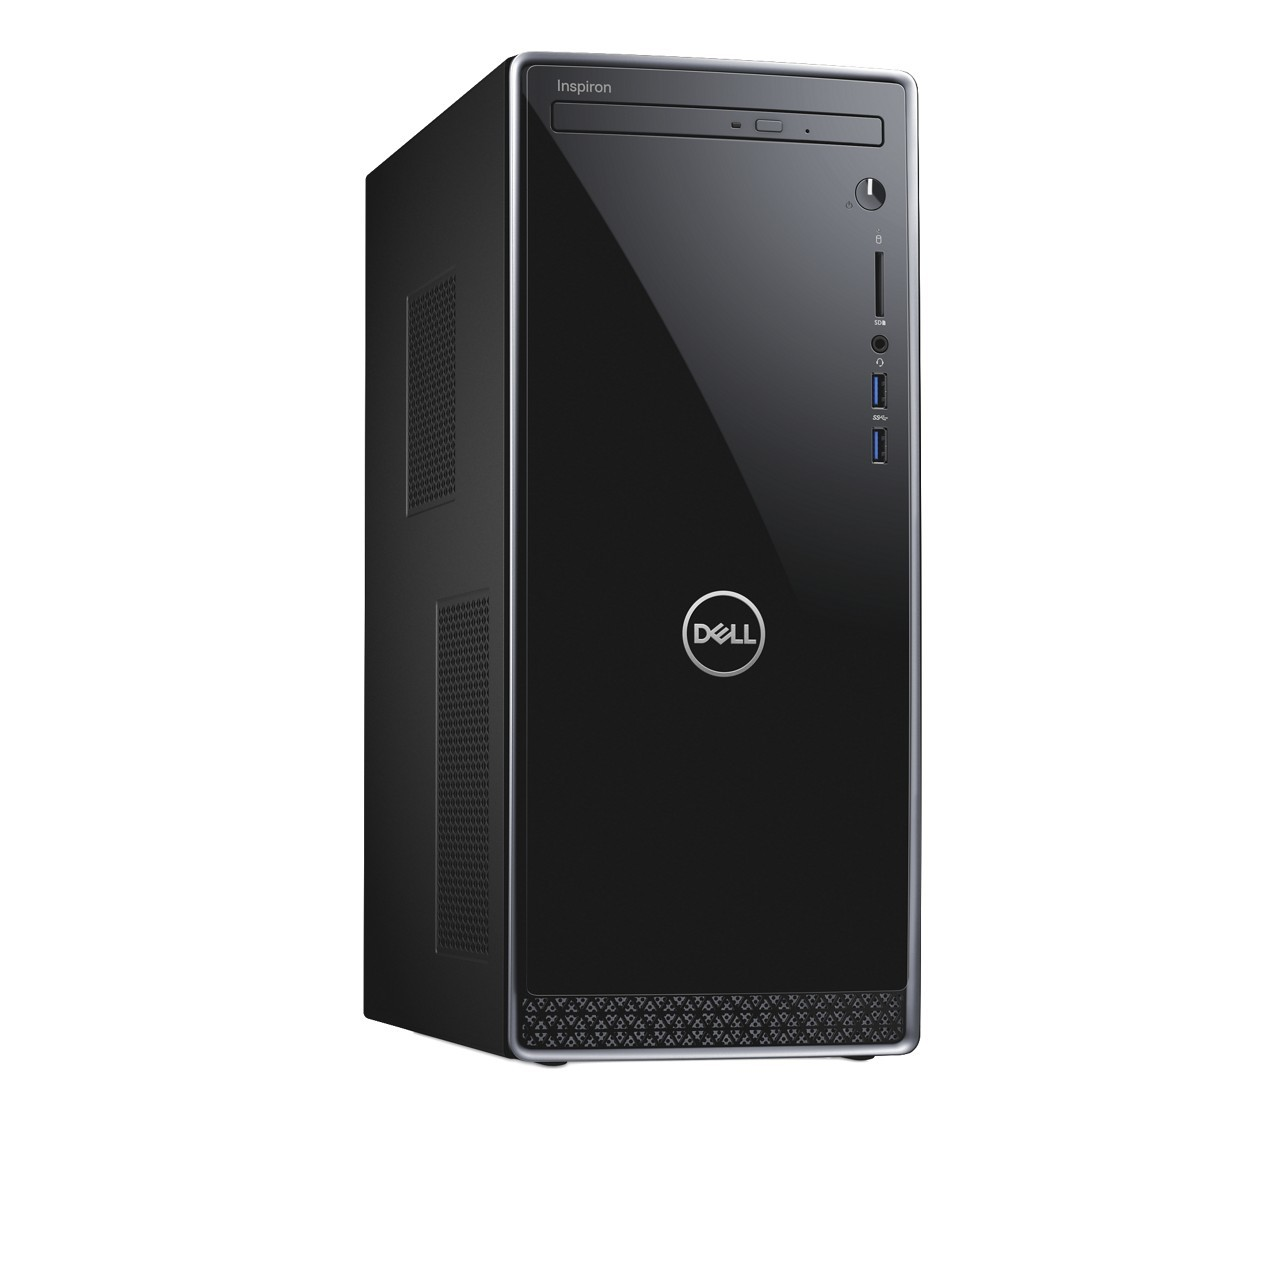 Dell Inspiron Desktop, Intel Core i5-8400 processor, 12GB